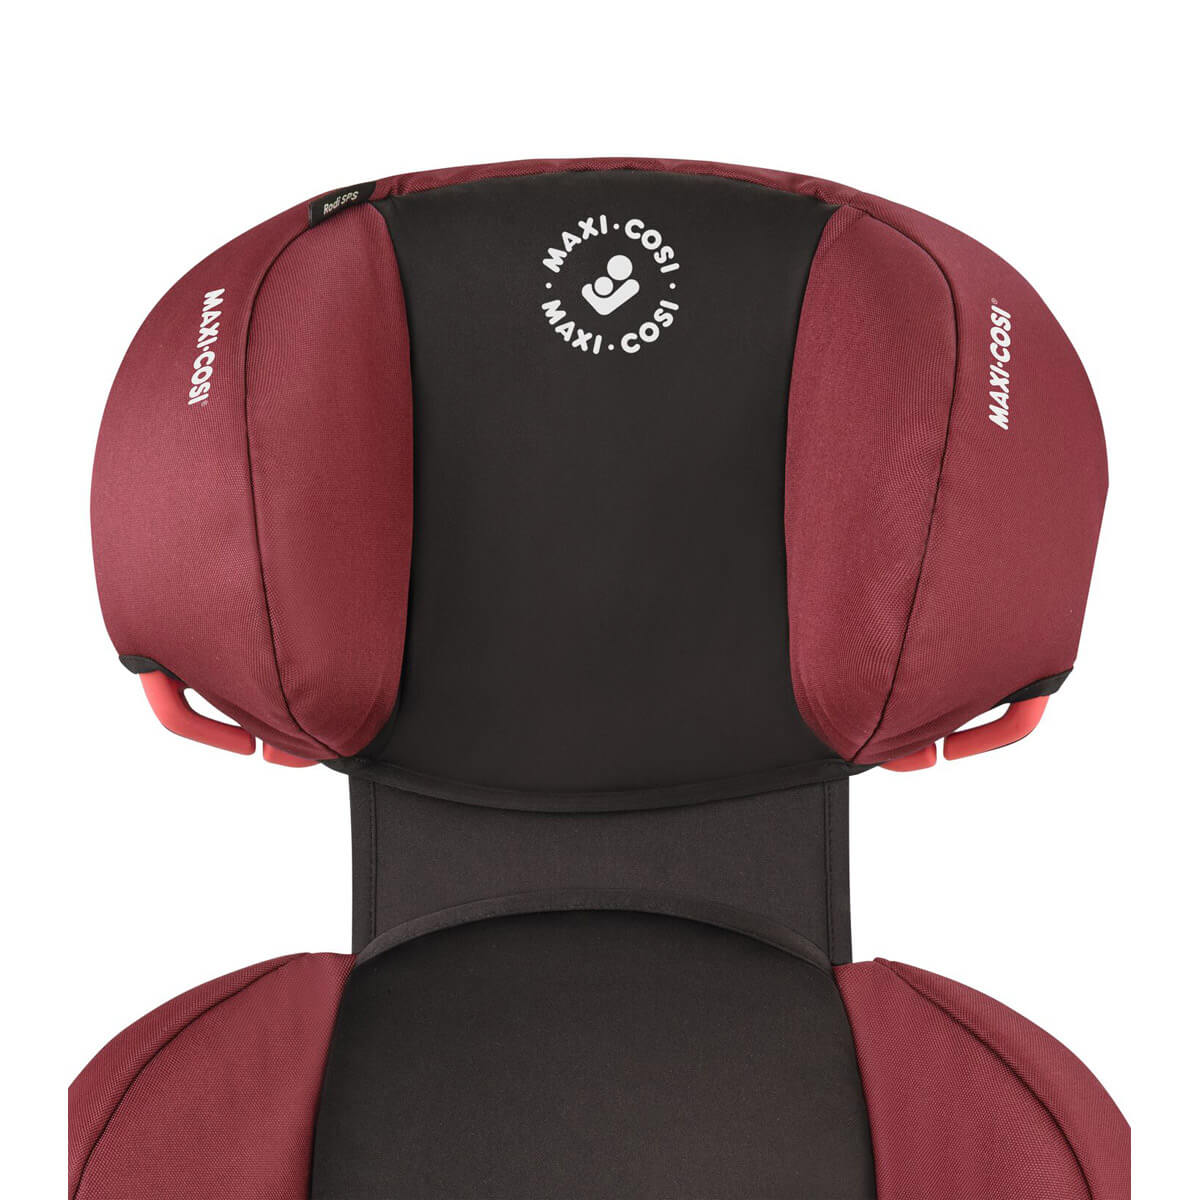 Excellent side impact protection for head, lower back and hips